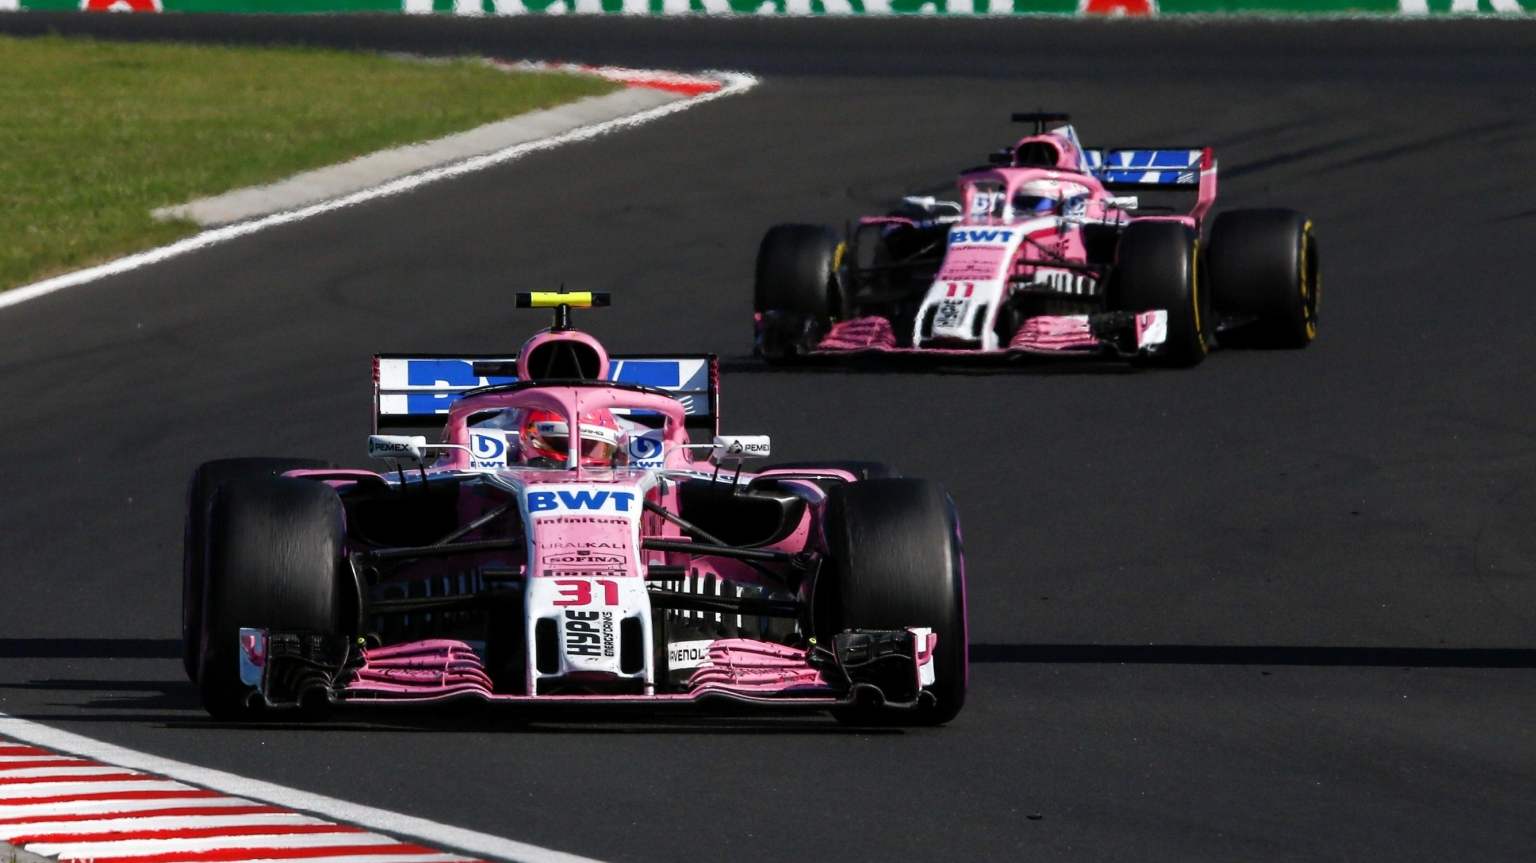 Fia Approve Racing Point Force India F1 Entry